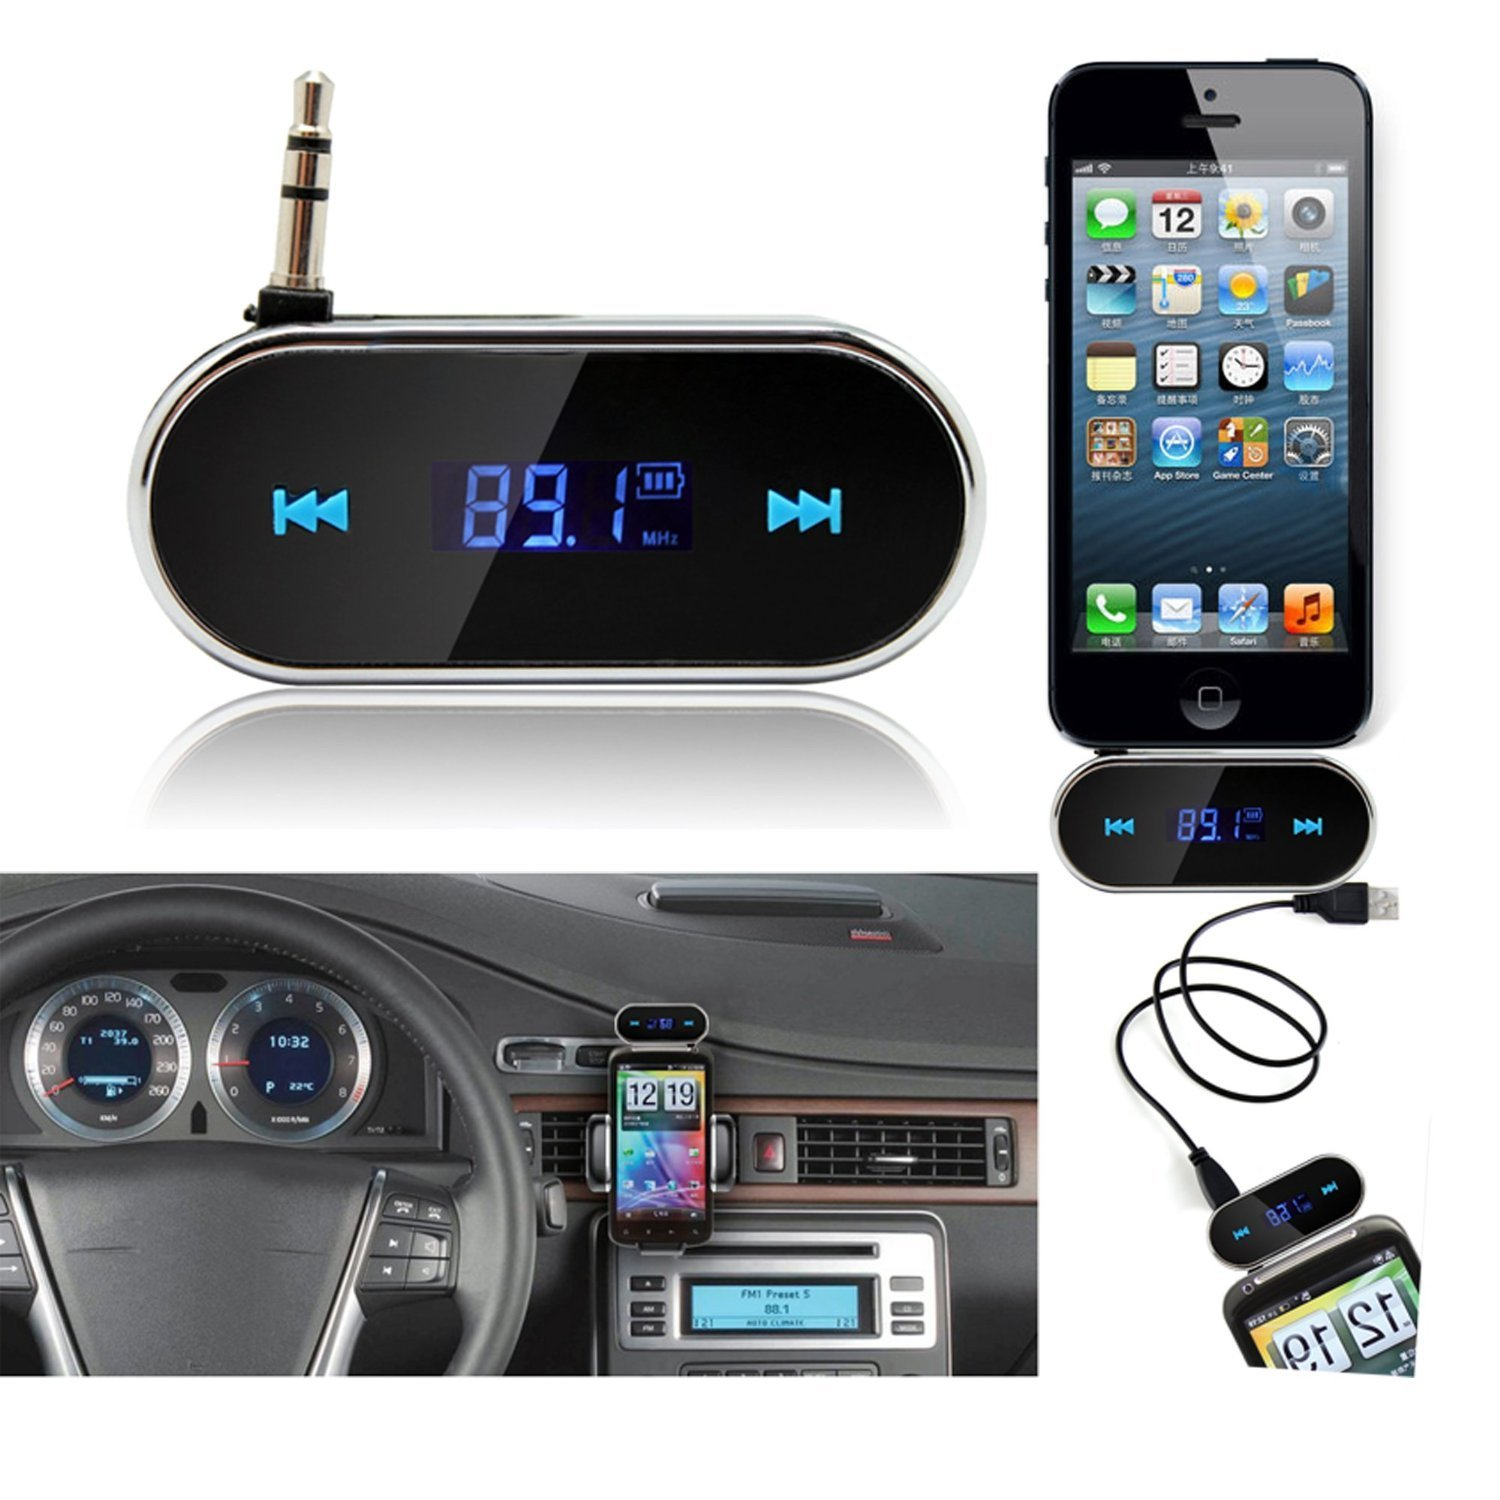 Electronics Bluetooth Fm Transmitter Universal 35 Mm In Car For Mobile Phones Wireless Iphone Samsung Sony Lg Htc Ipod Touch Ipad